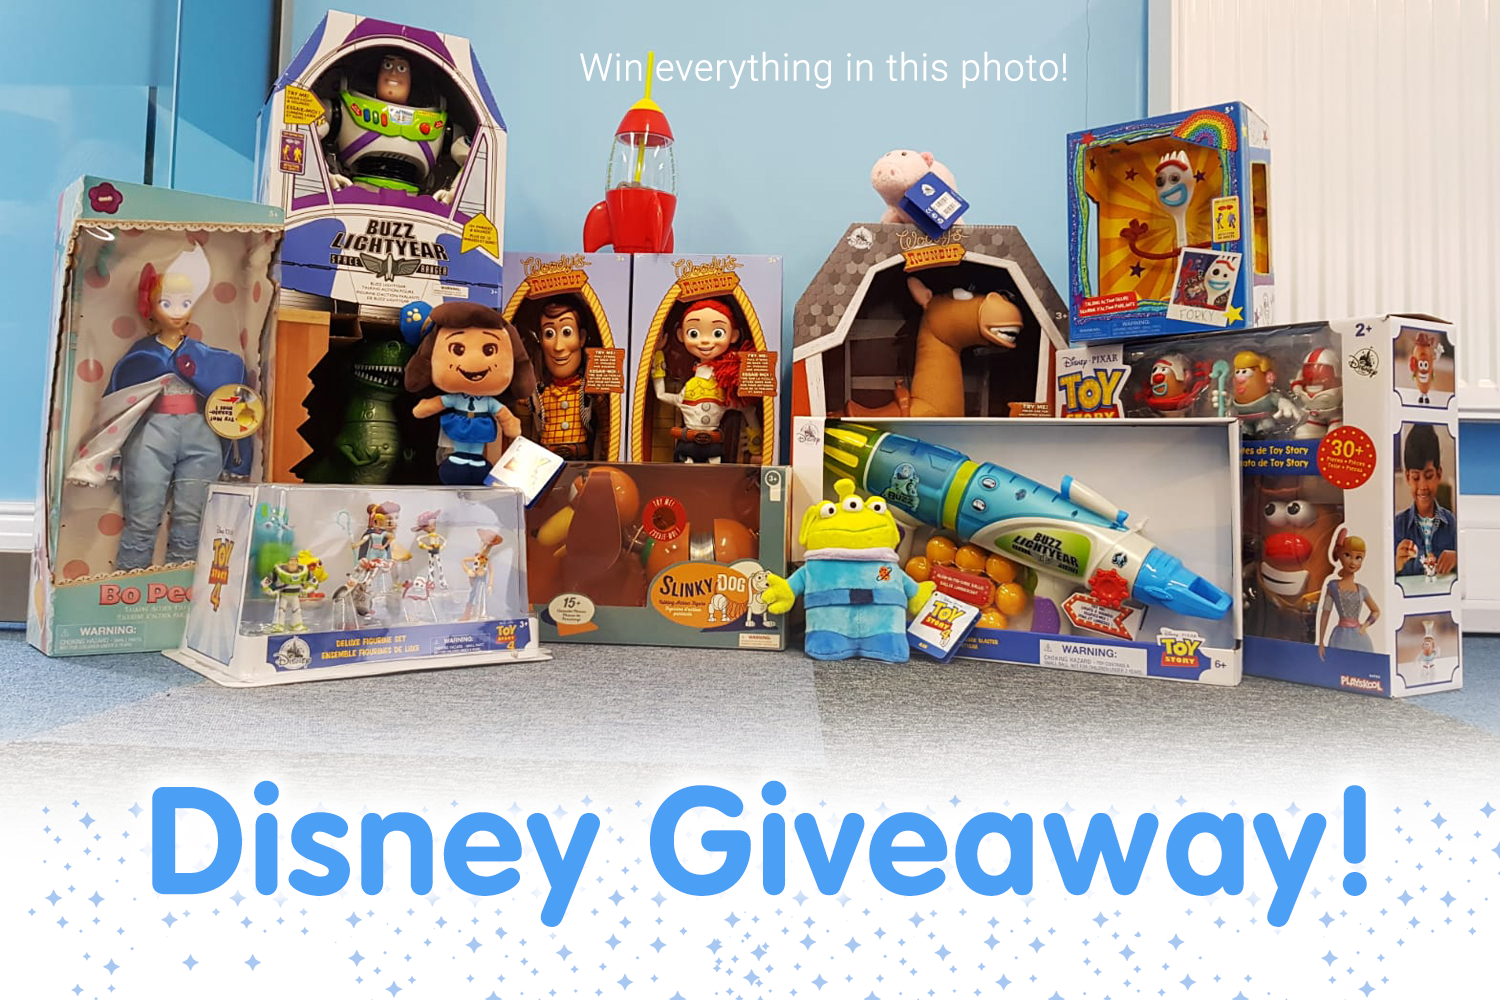 The Disney Store competition this bank holiday